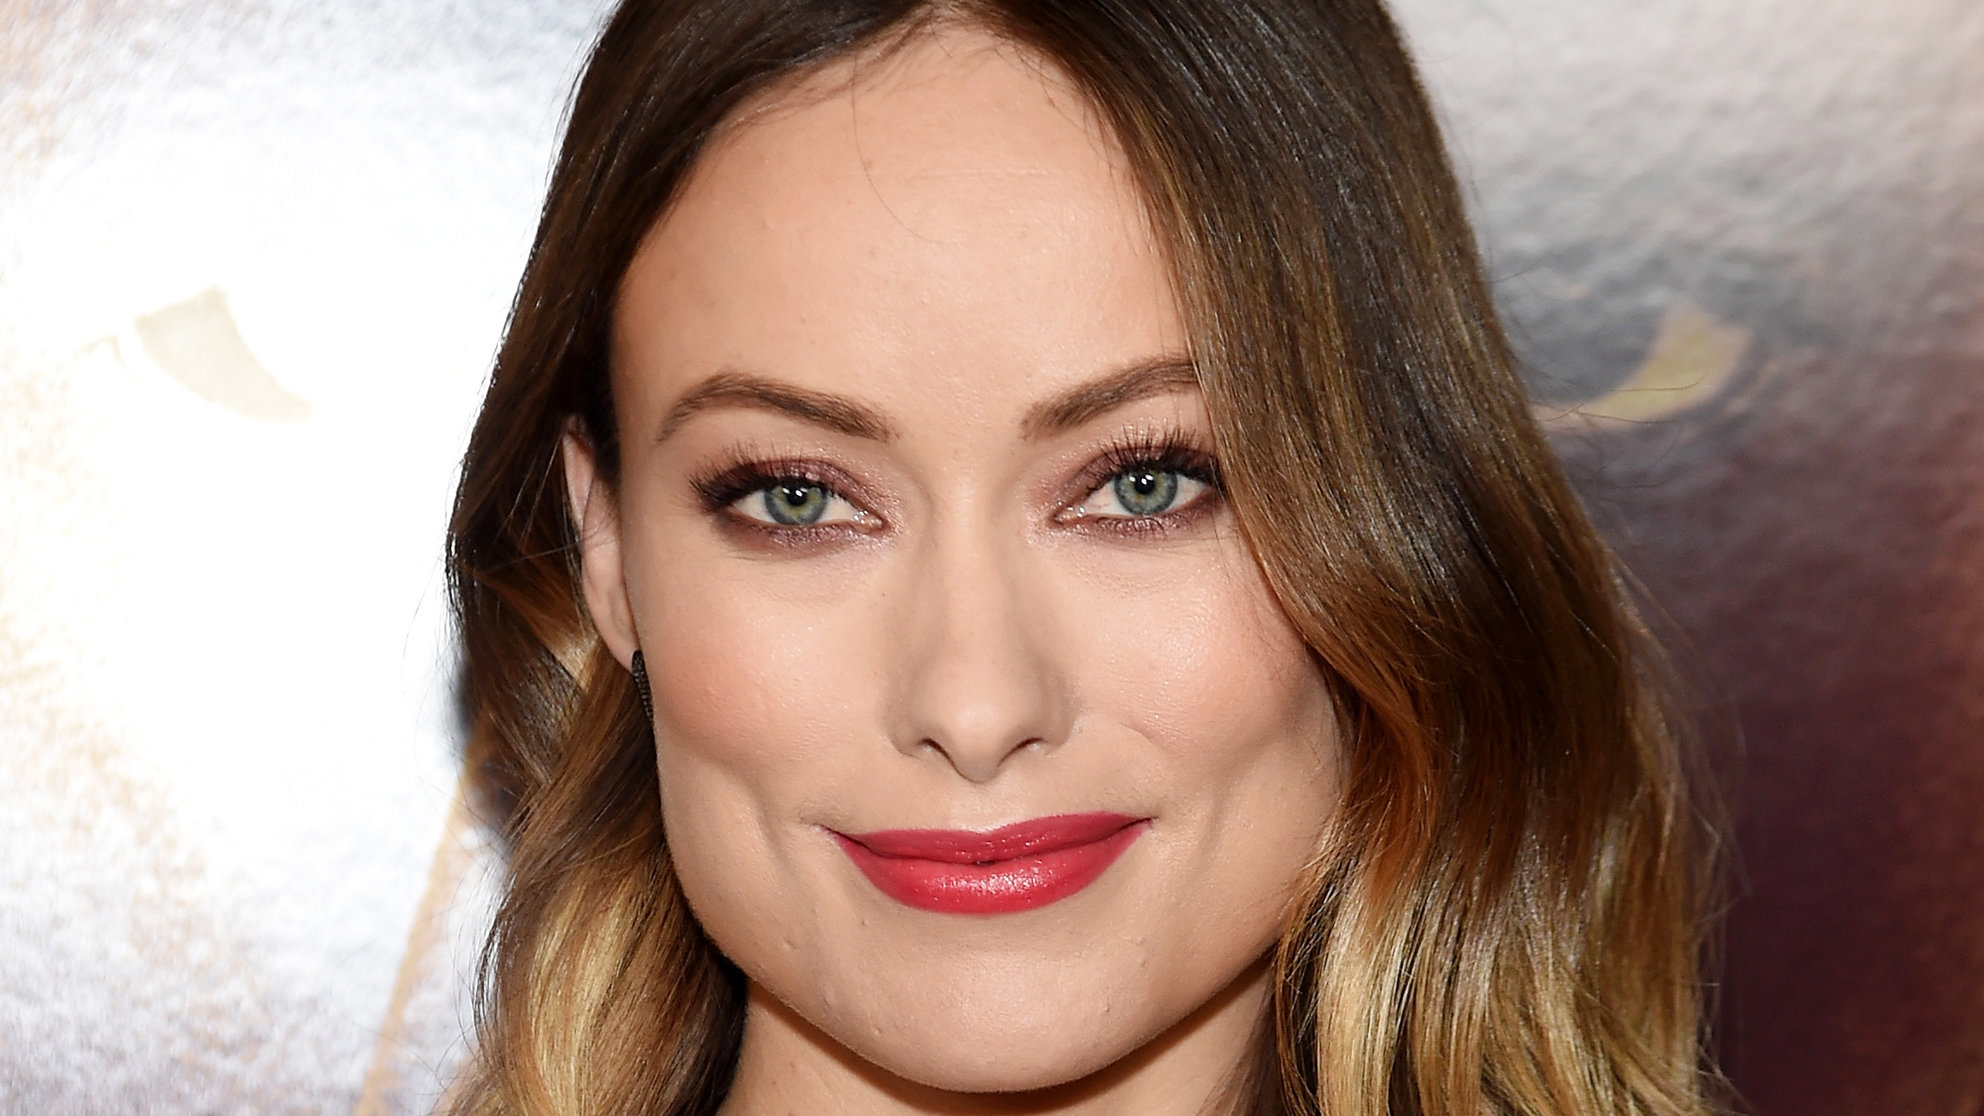 Olivia Wilde Gets Real About Working Out Post-Baby in Sweaty Gym Selfie